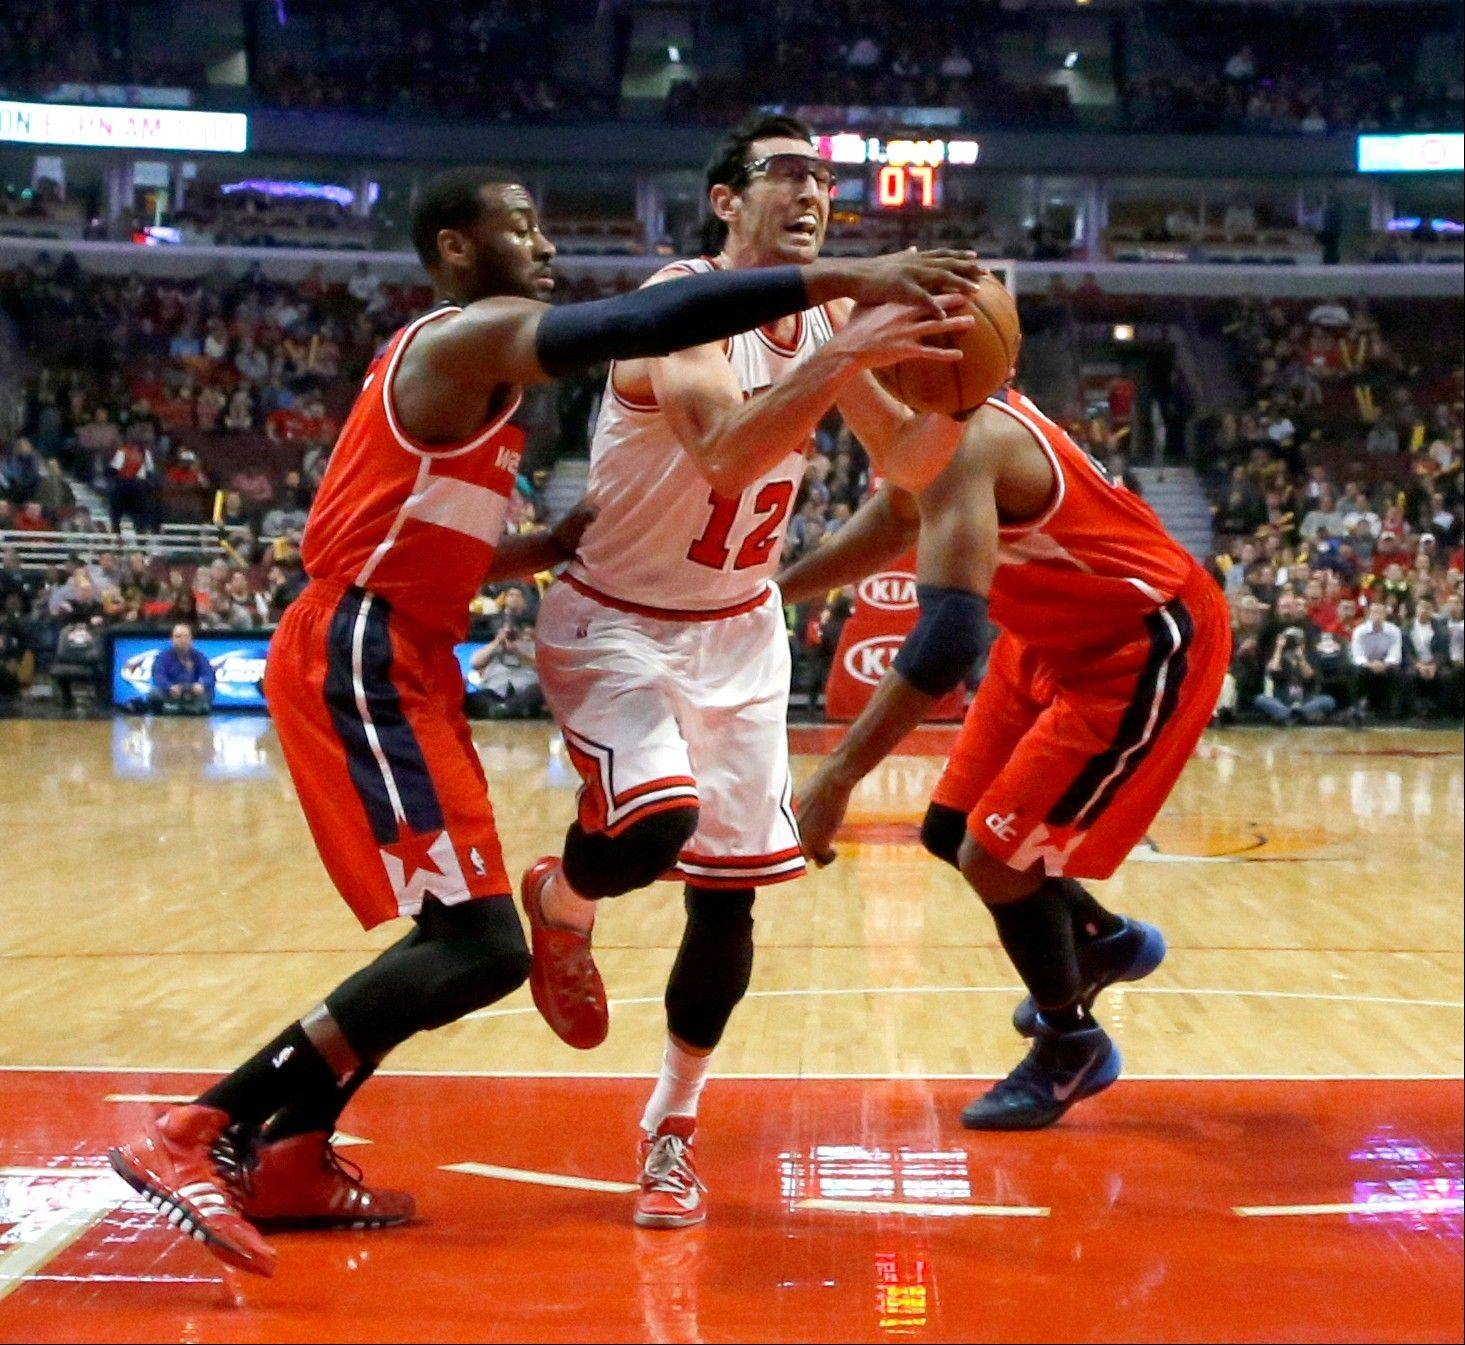 Bulls guard Kirk Hinrich drives between Washington Wizards guard John Wall, left, and Nene, right, during the first half of an NBA basketball game Monday, Jan. 13, 2014, in Chicago.